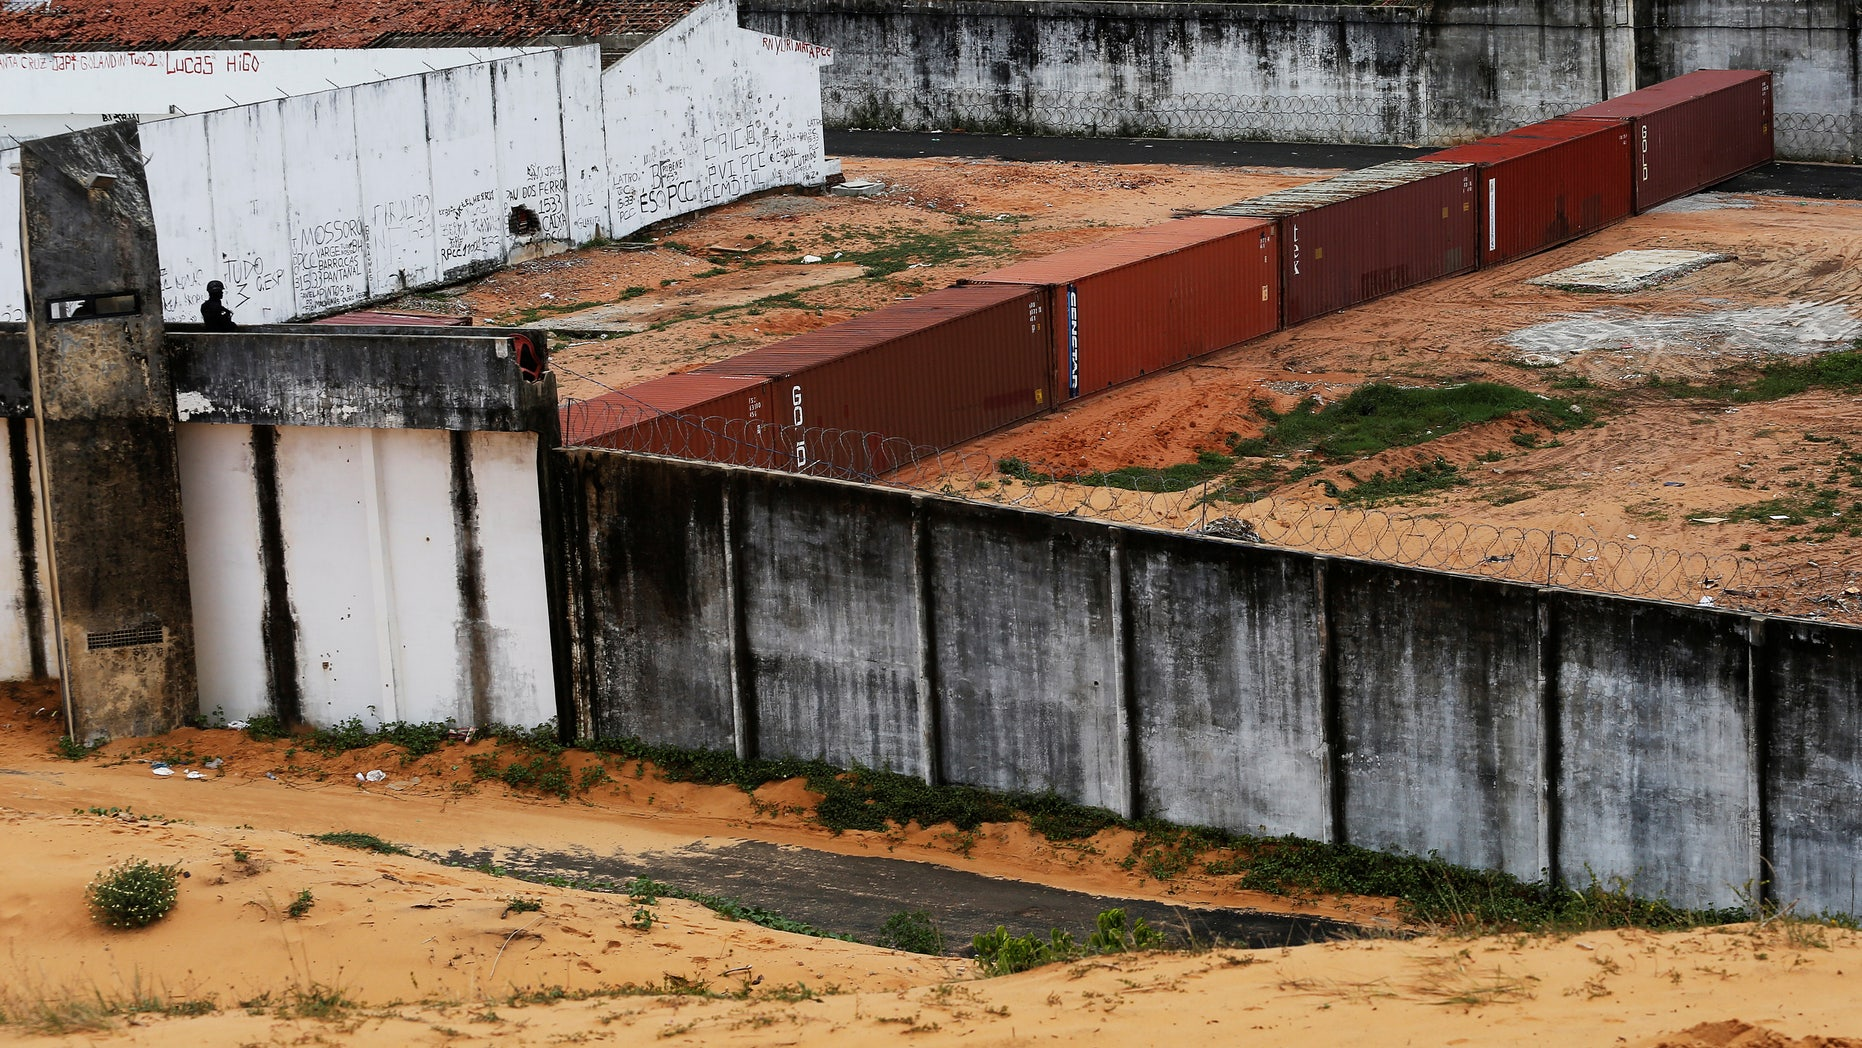 An improvised wall of shipping containers separate two factions of drug gangs at Alcacuz prison, Brazil.